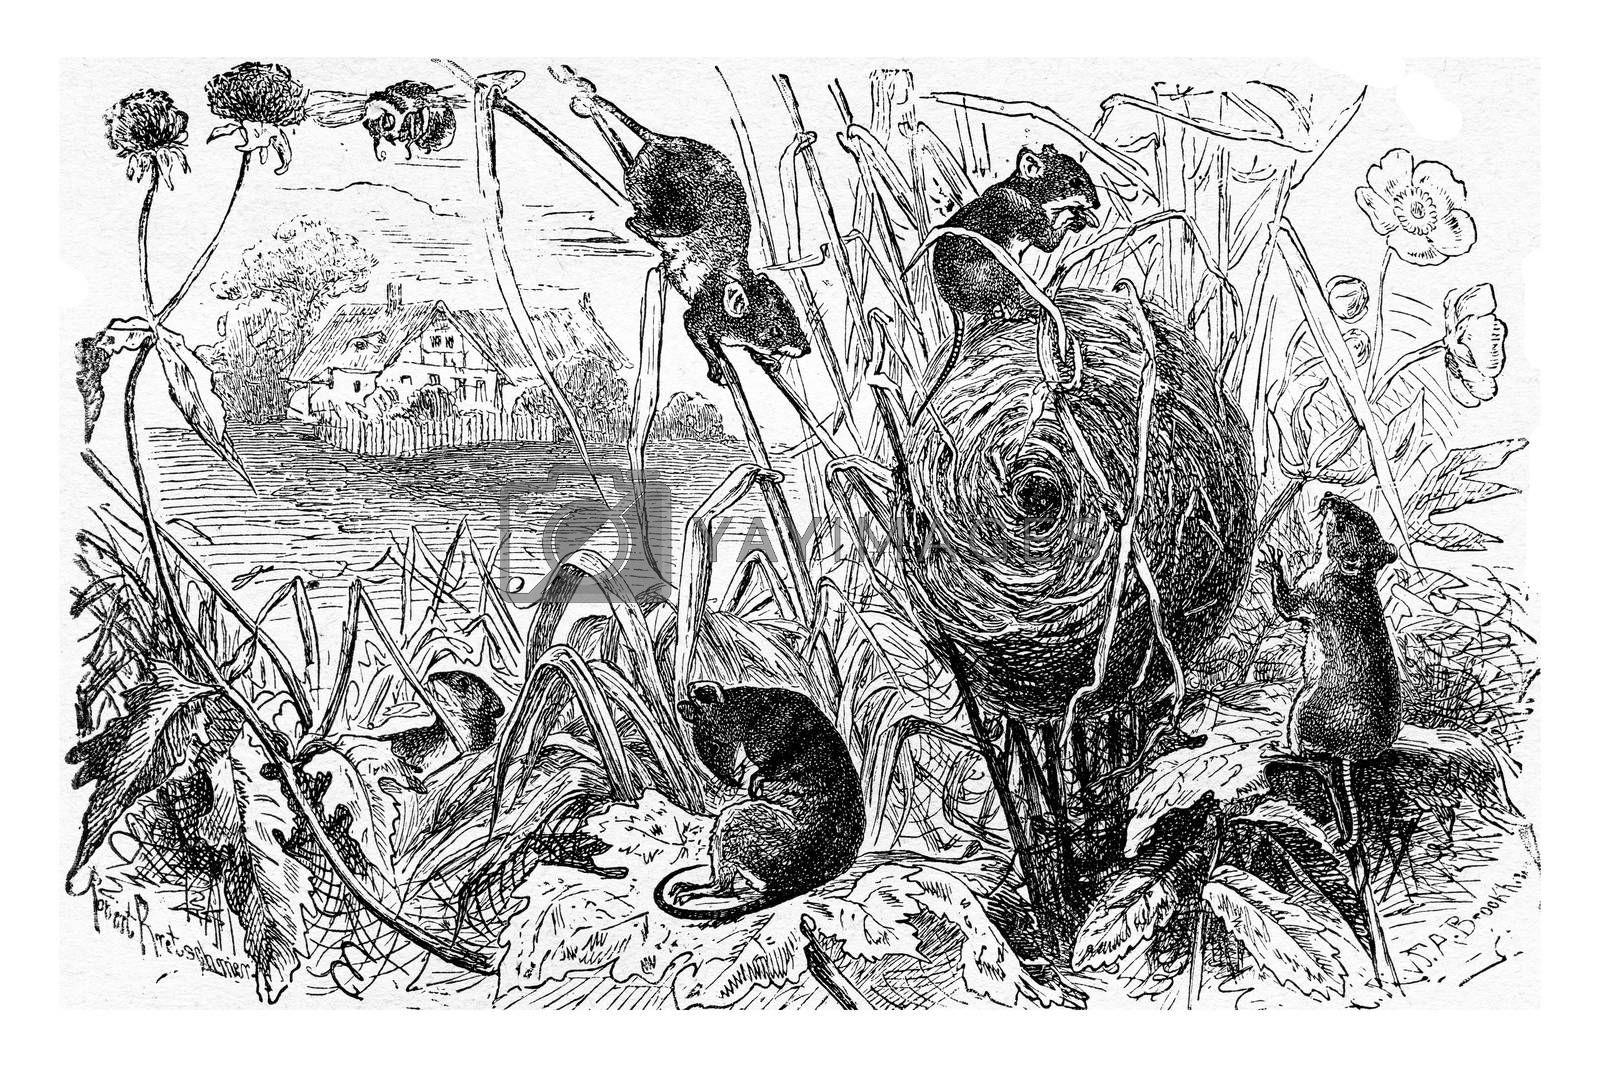 Dwarf mouse (Mus minutus) and its nest, vintage engraved illustration. La Vie dans la nature, 1890.